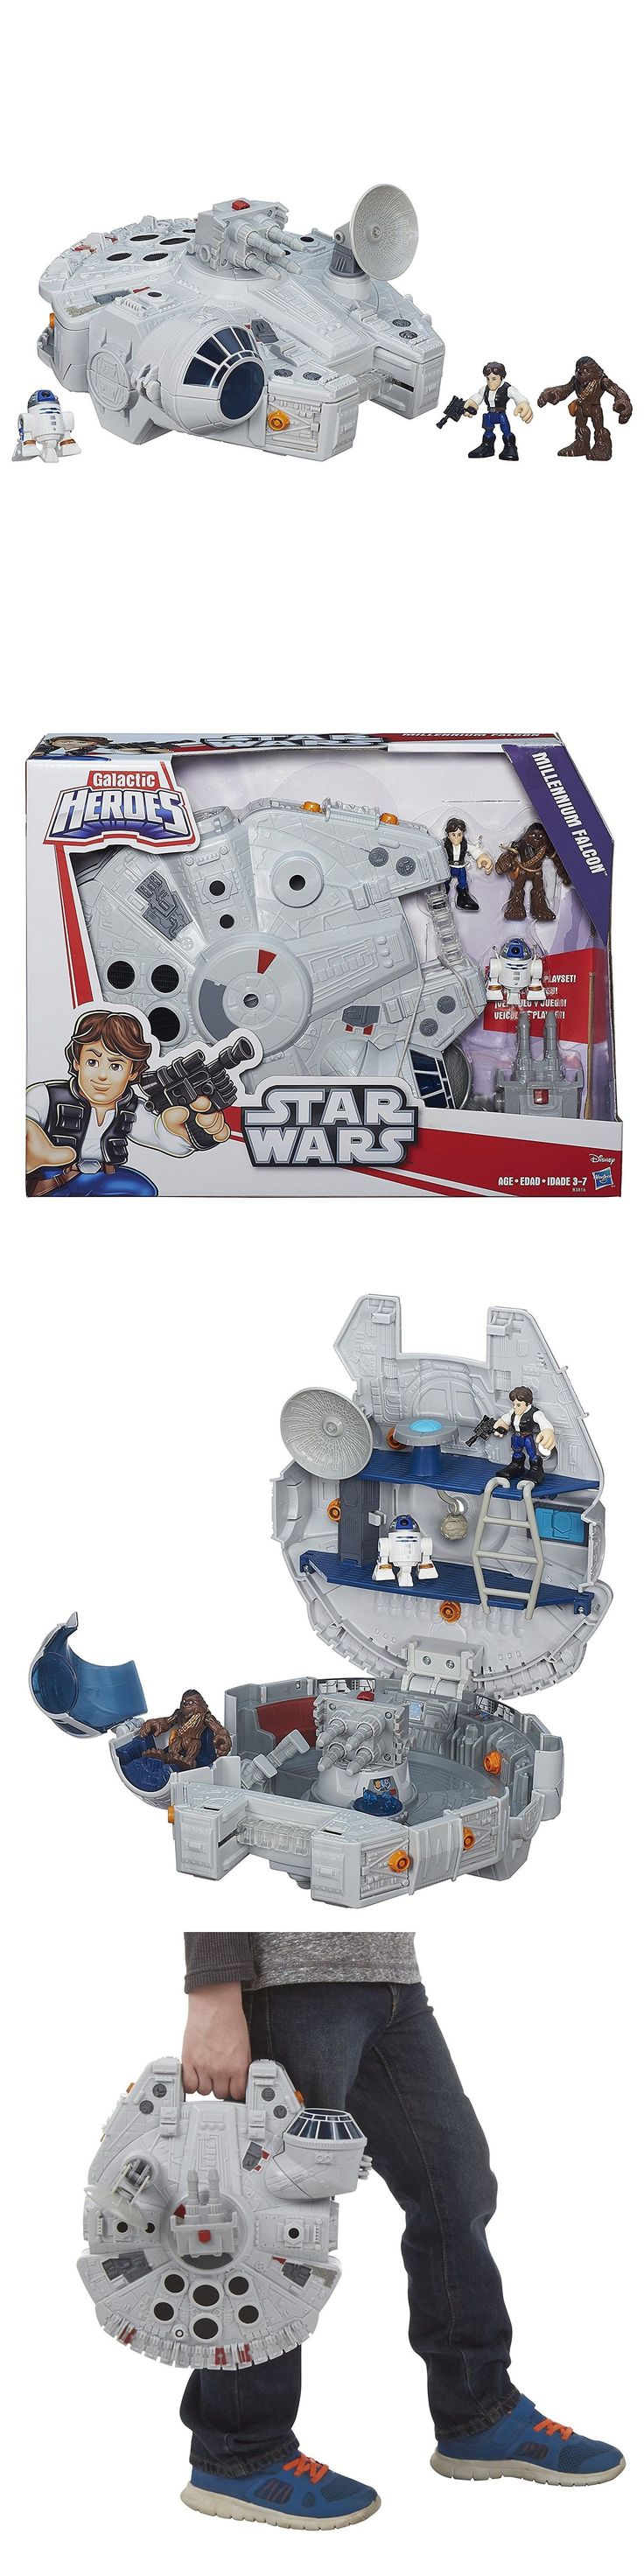 Playskool 2576: New Playskool Heroes Star Wars Galactic Heroes Millennium Falcon And Figures -> BUY IT NOW ONLY: $35 on eBay!